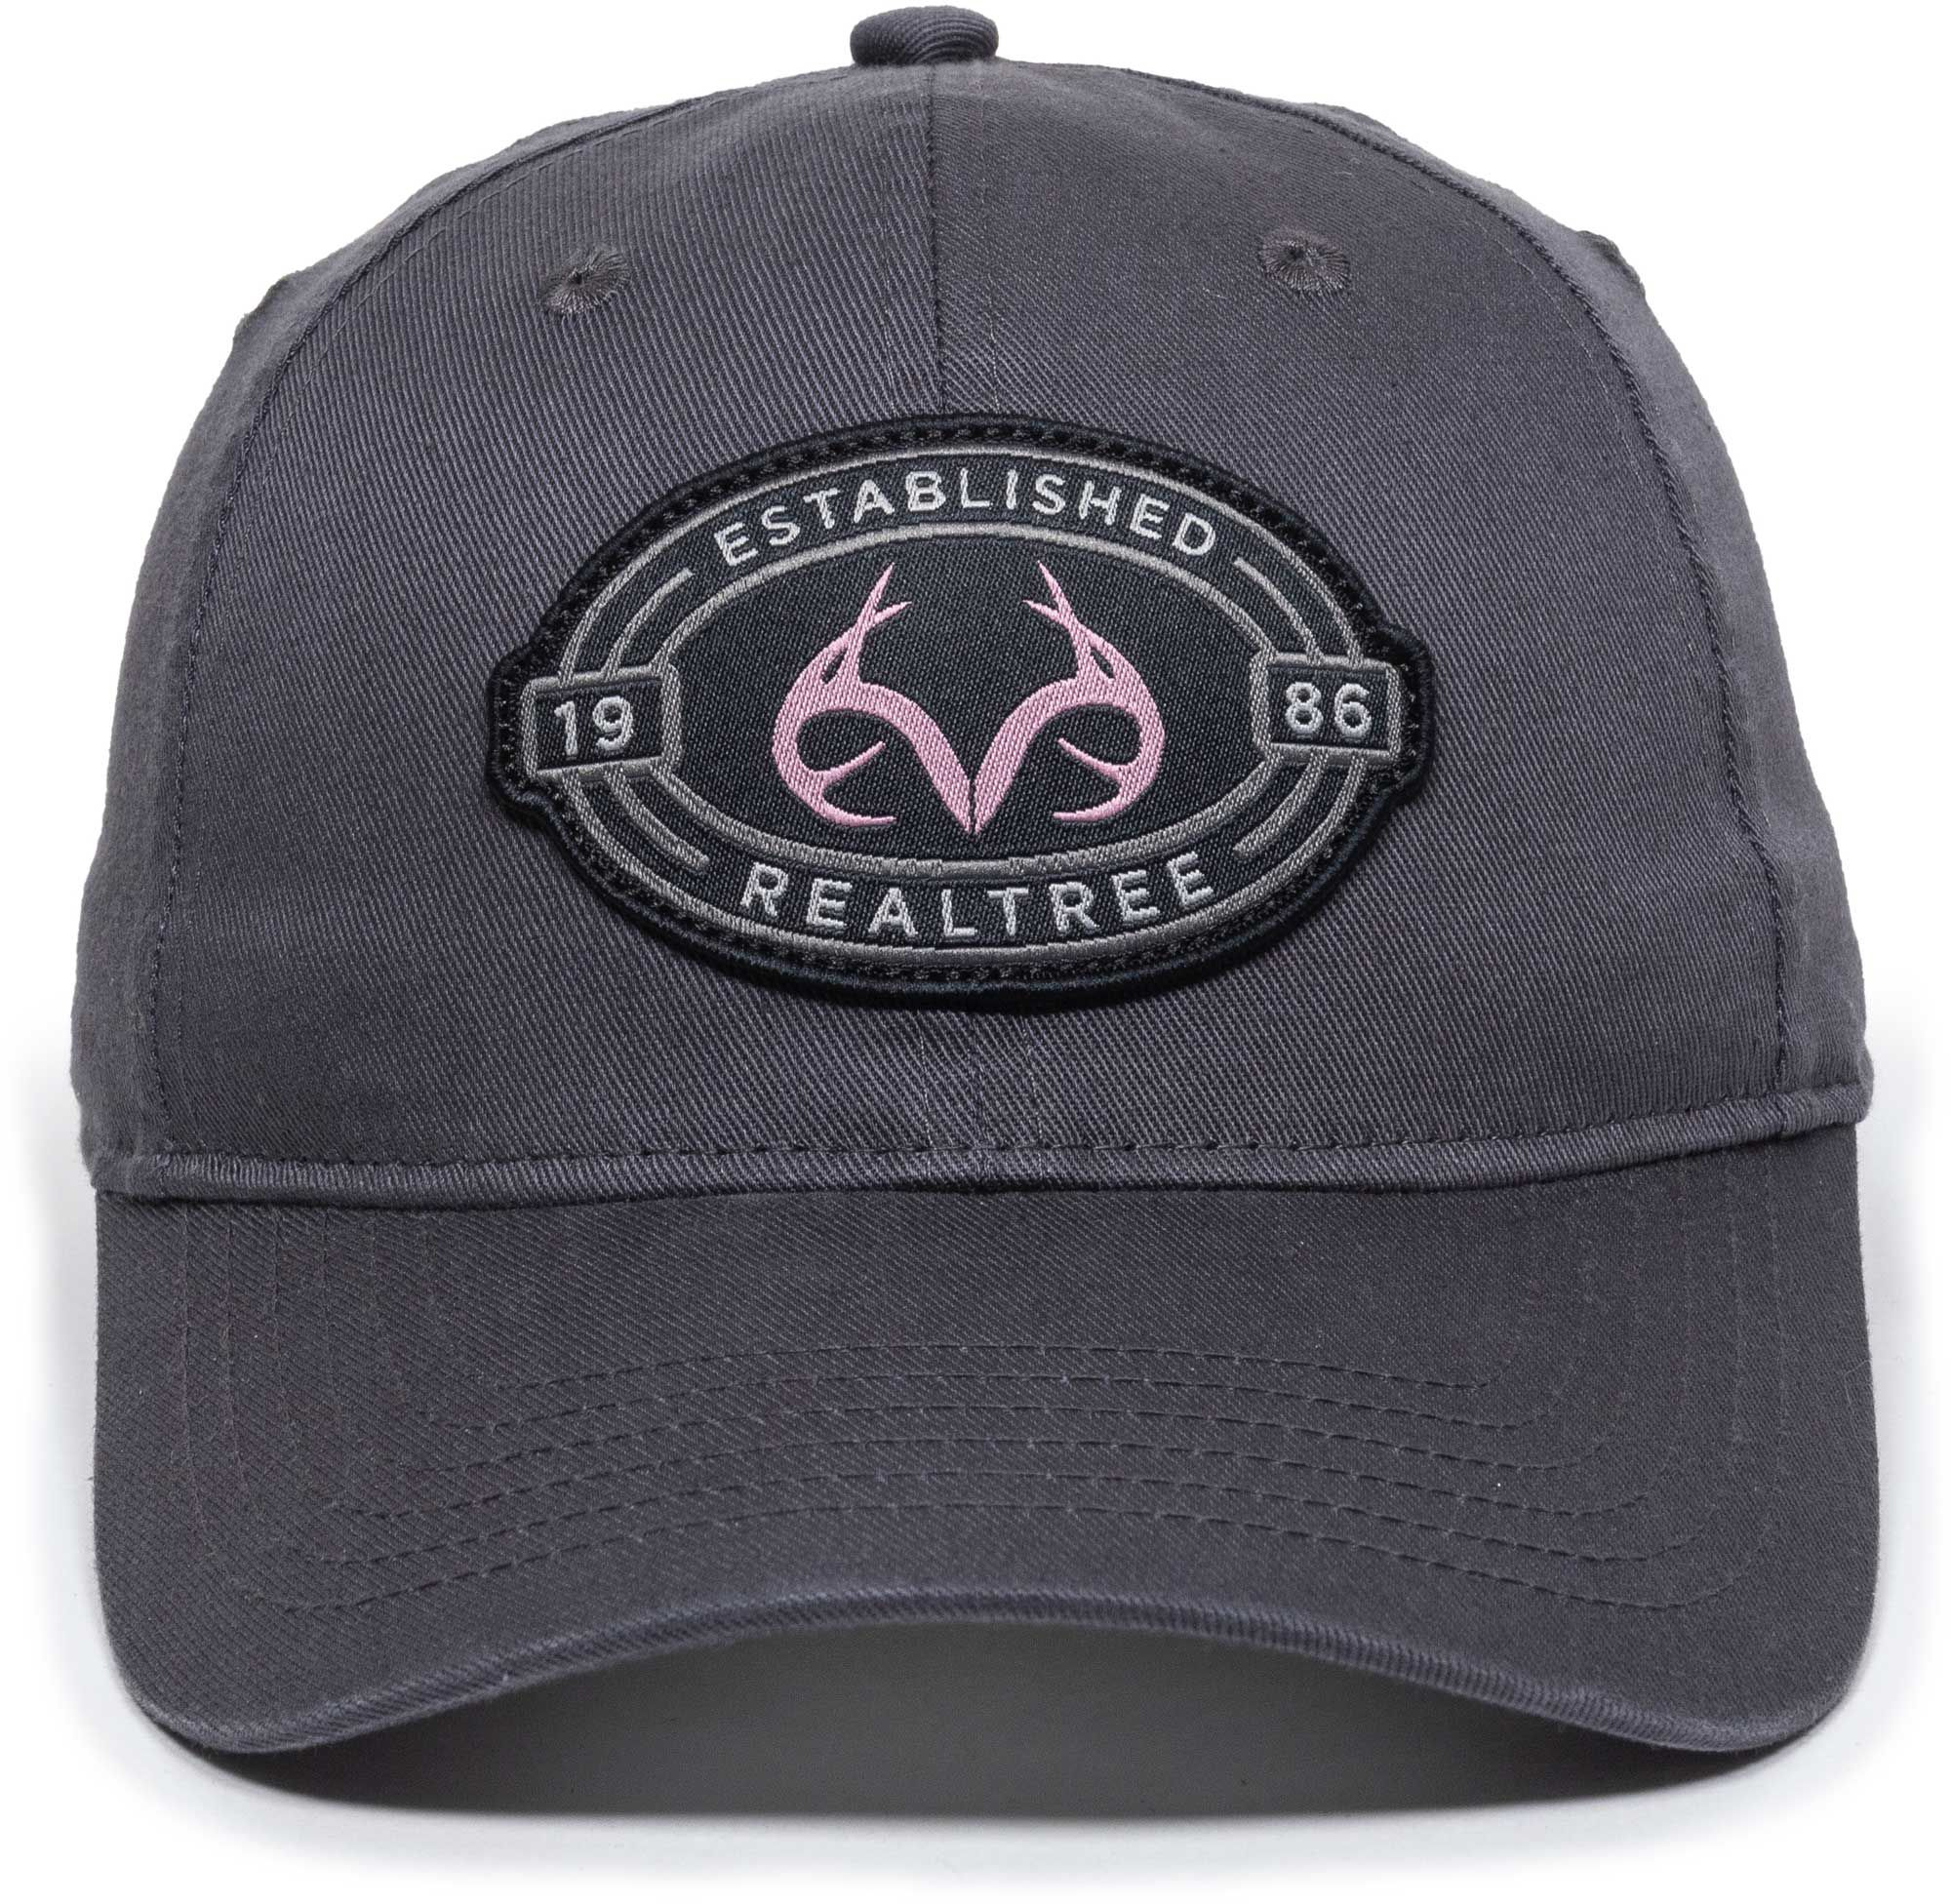 Outdoor Cap Women's Realtree Casual Ponytail Hat, Size: One size, Grey